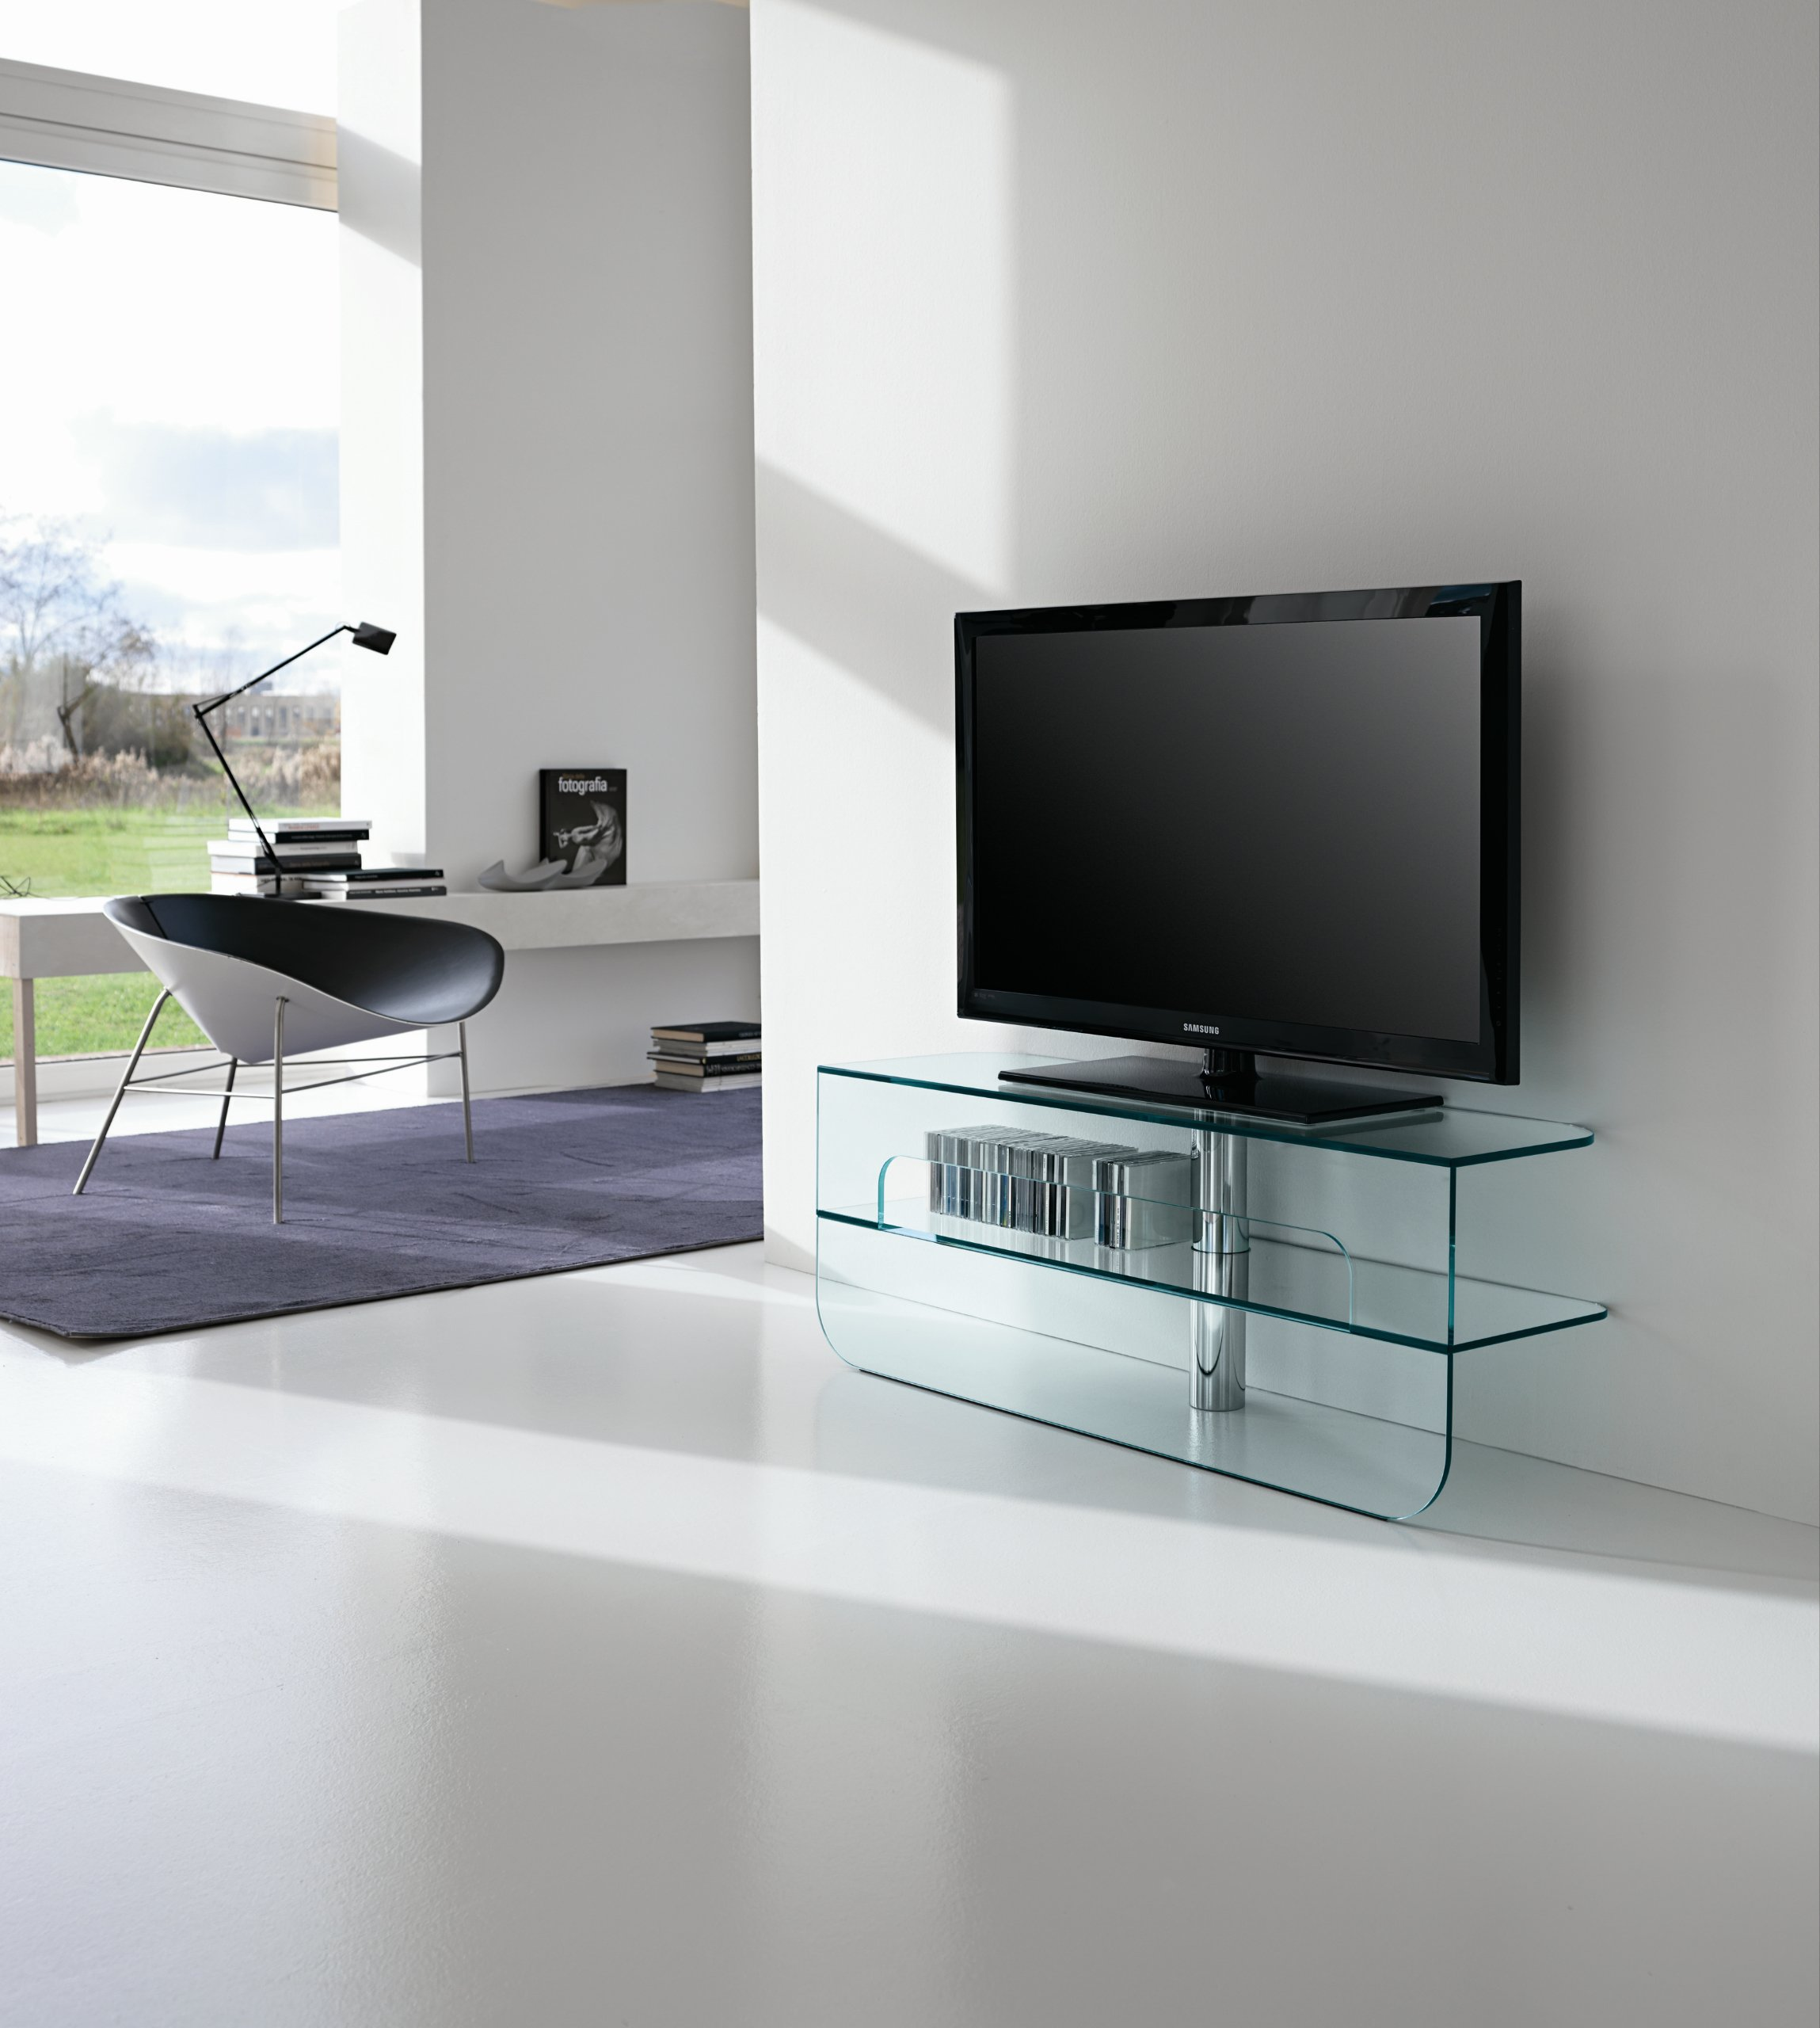 Meuble tv bas en verre plasmatik by t d tonelli design for Meuble tv en verre design